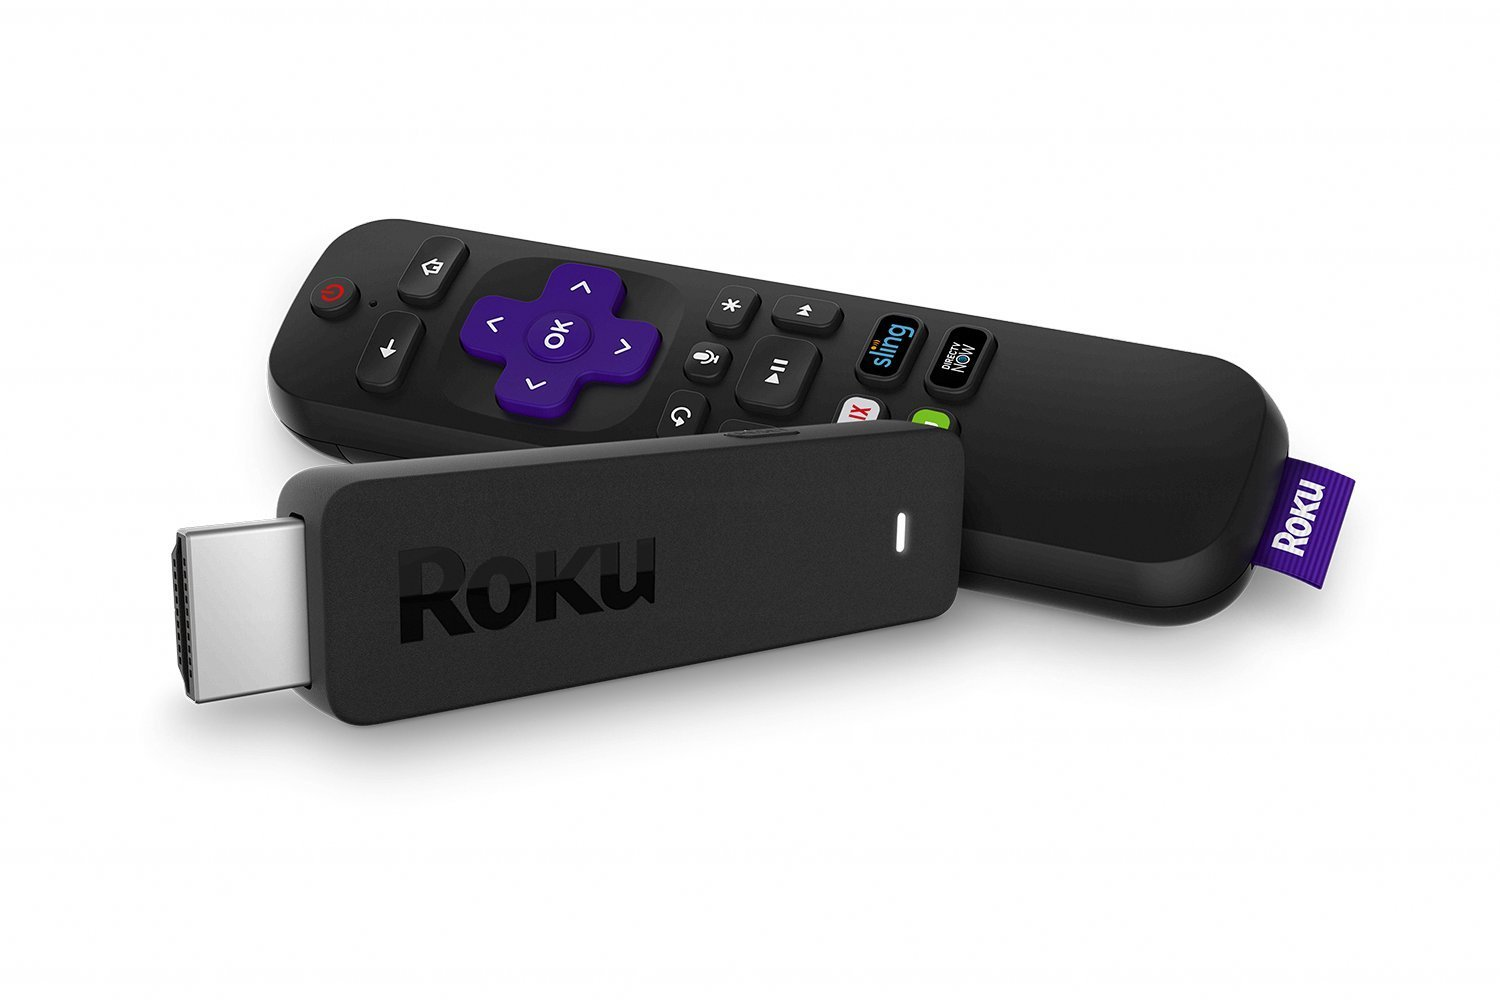 roku-streaming-stick-portable-power-packed-player-with-voice-remote-with-tv-power-and-volume-2017-renewed